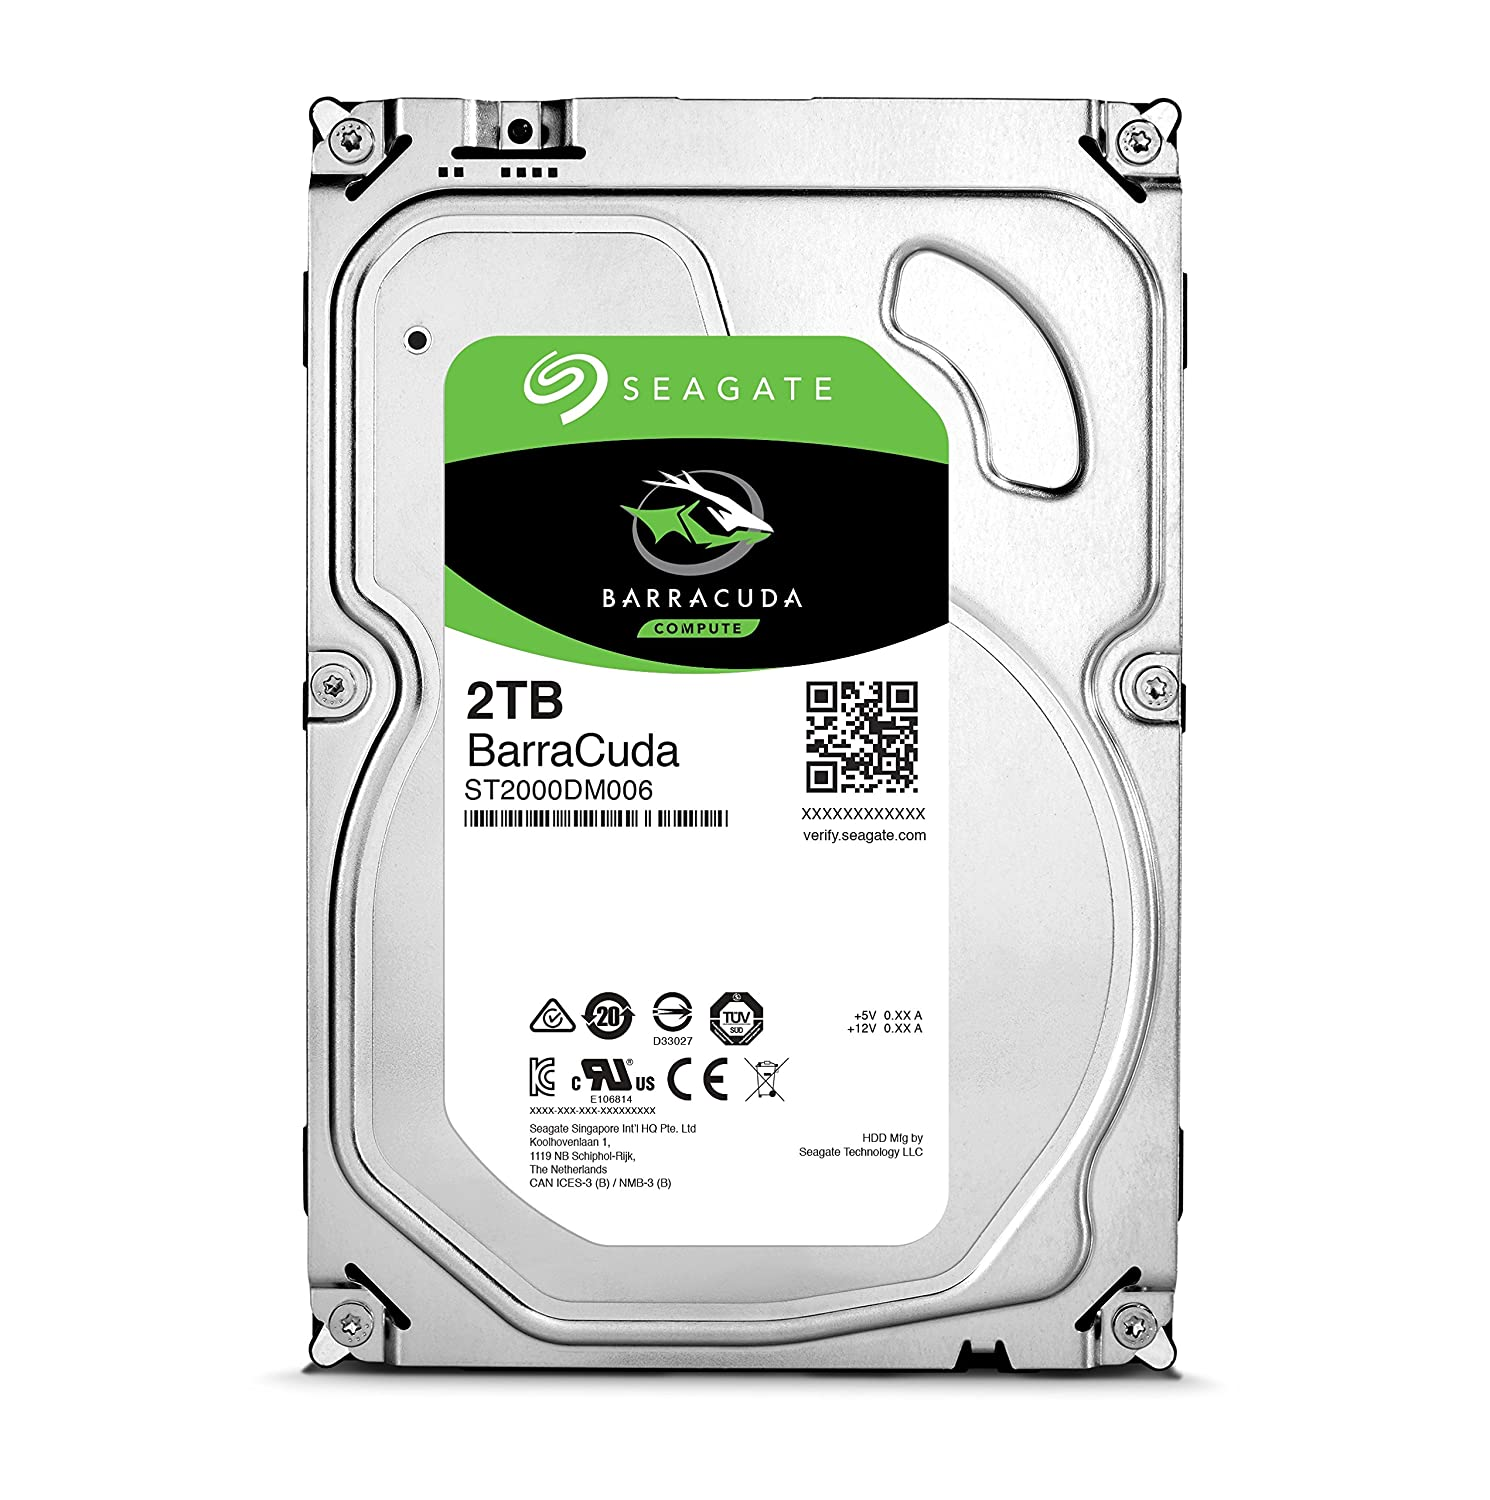 2TB Seagata Barracuda 3 5-inch SATA 6Gbps Internal Desktop HDD (64MB cache,  7200 RPM)